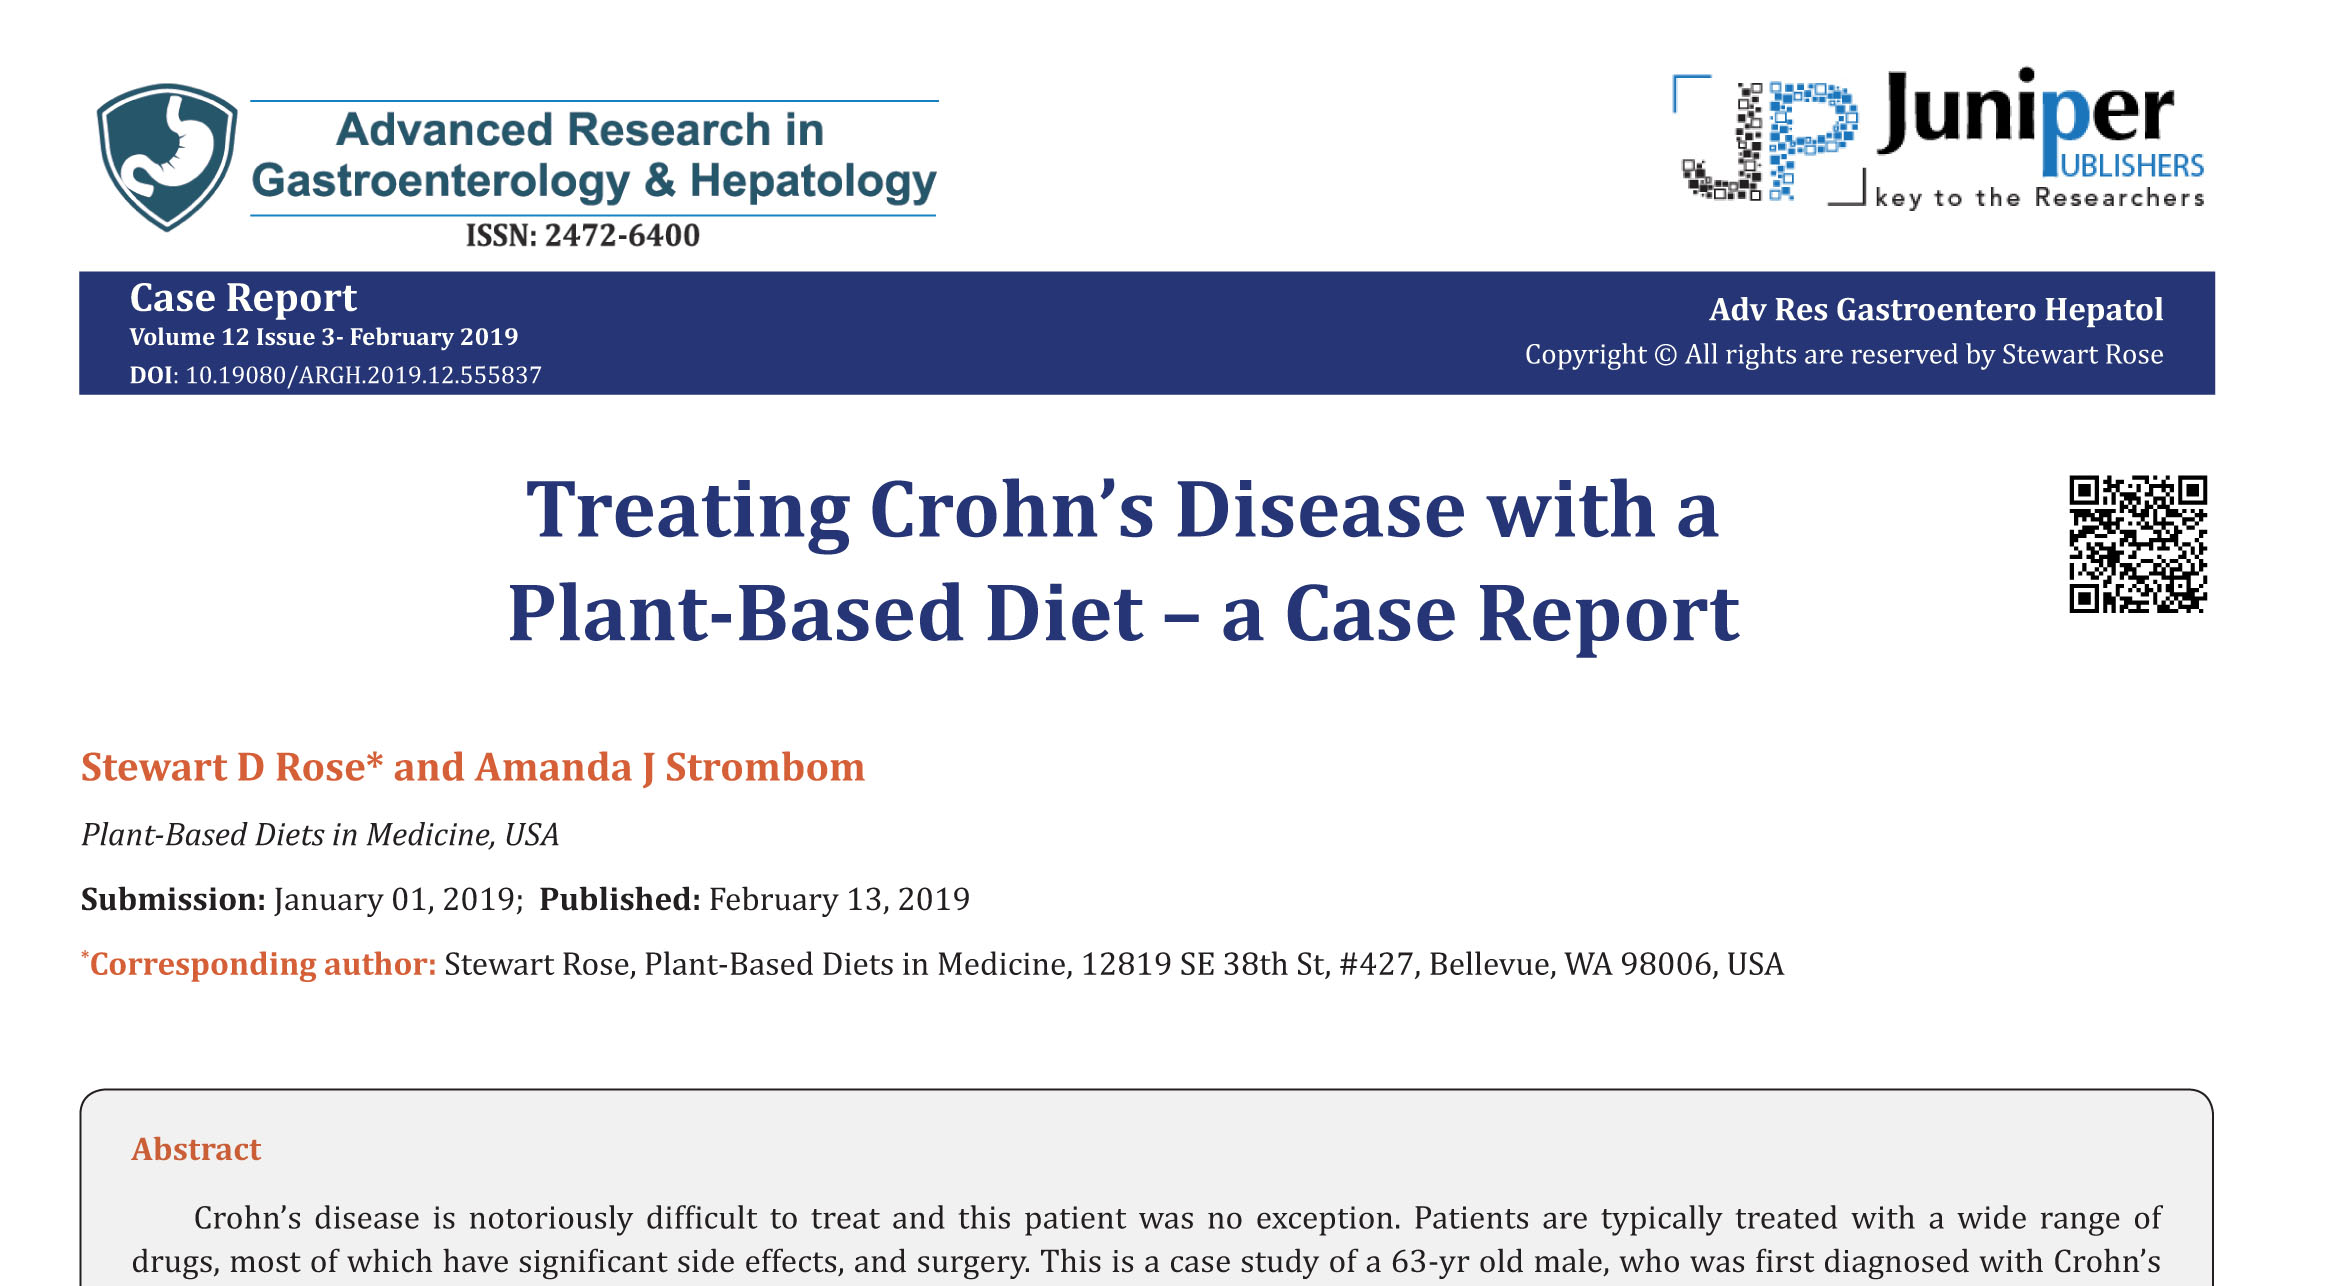 Treating Crohn's Disease with a Plant-Based Diet – a Case Report